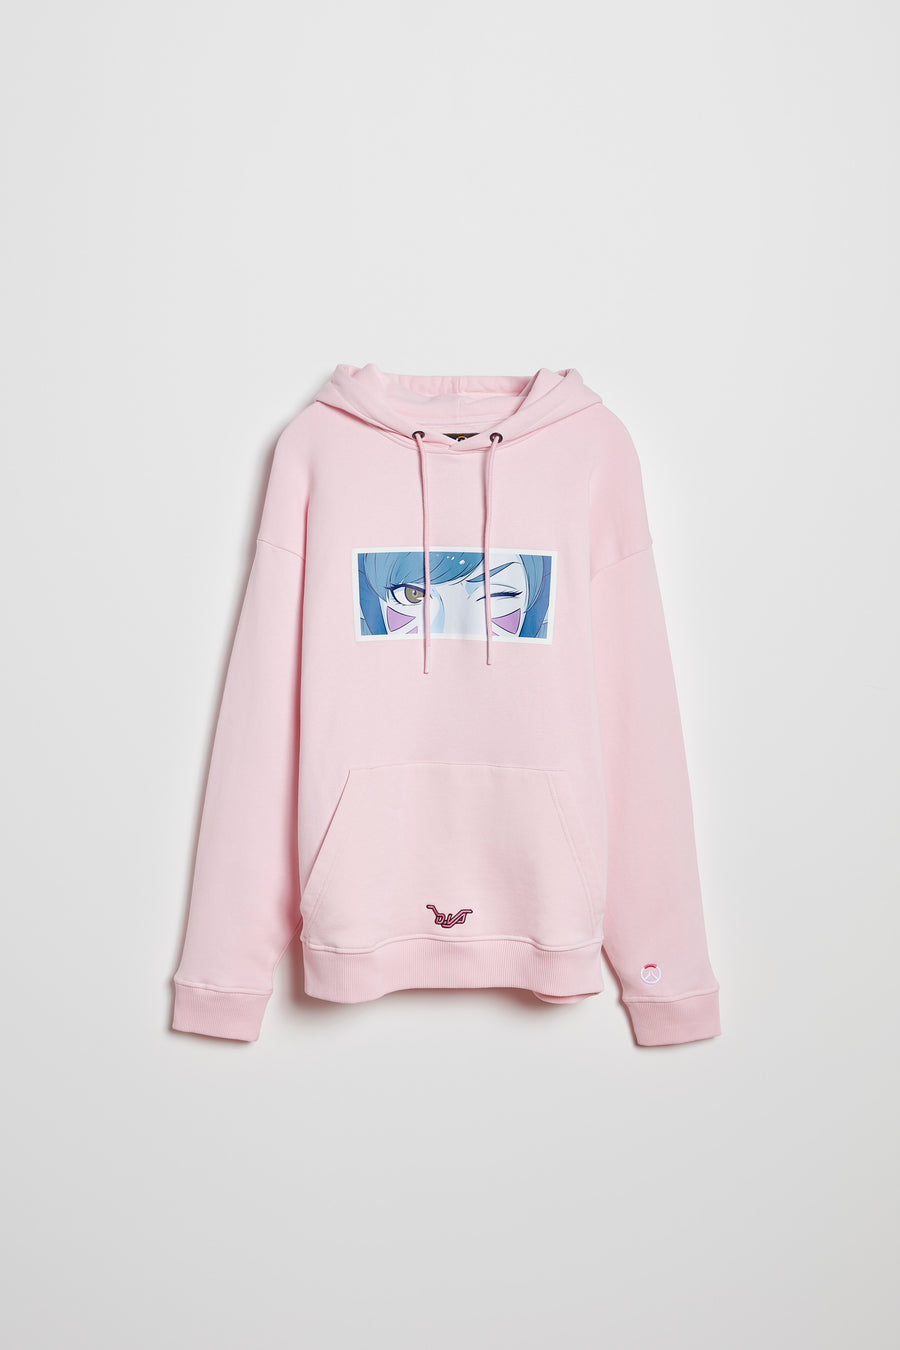 Overwatch DVA Anime Oversize Pullover Hoodie